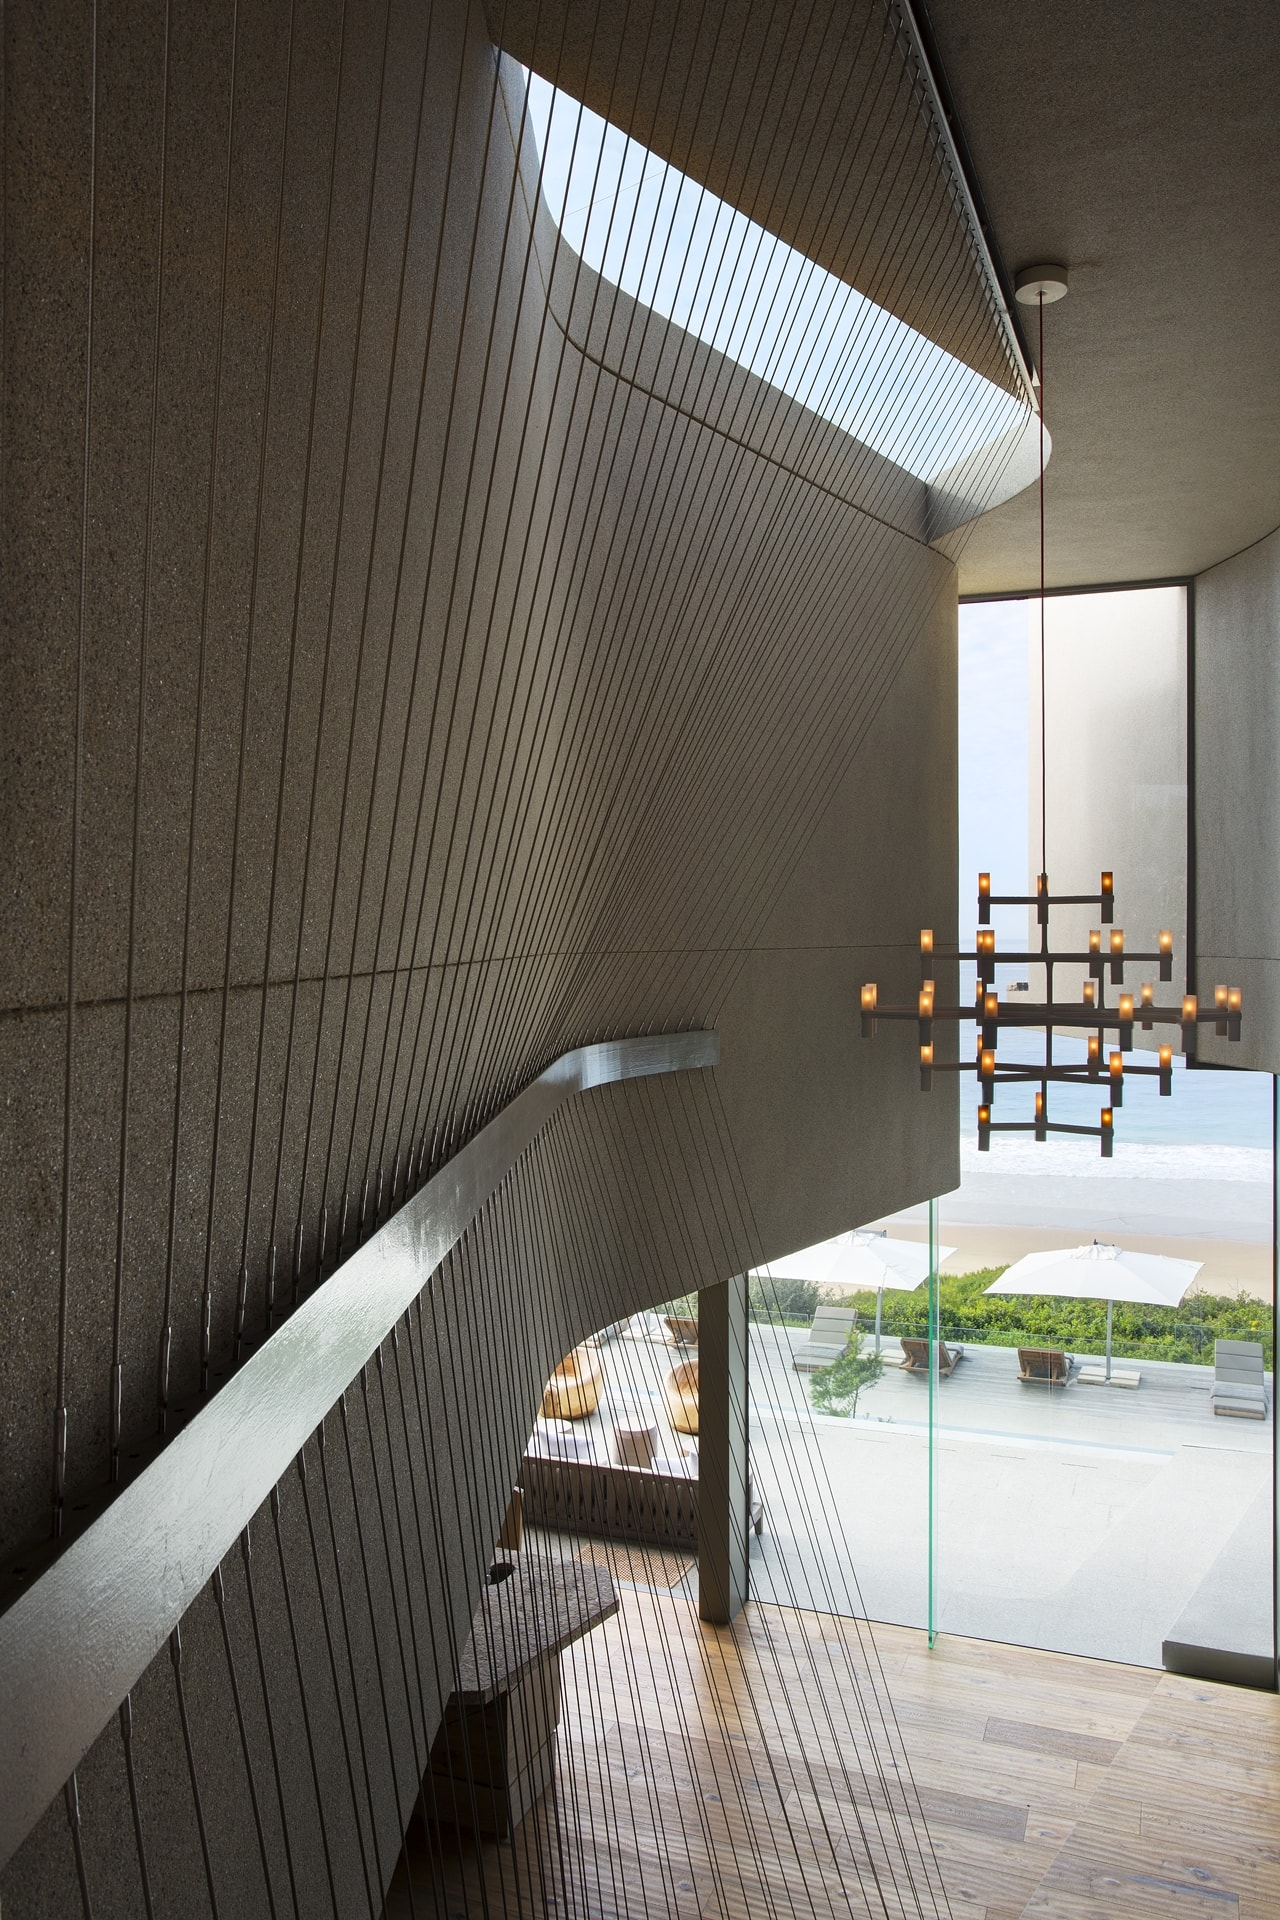 Staircase details in modern home with wooden facade by SAOTA